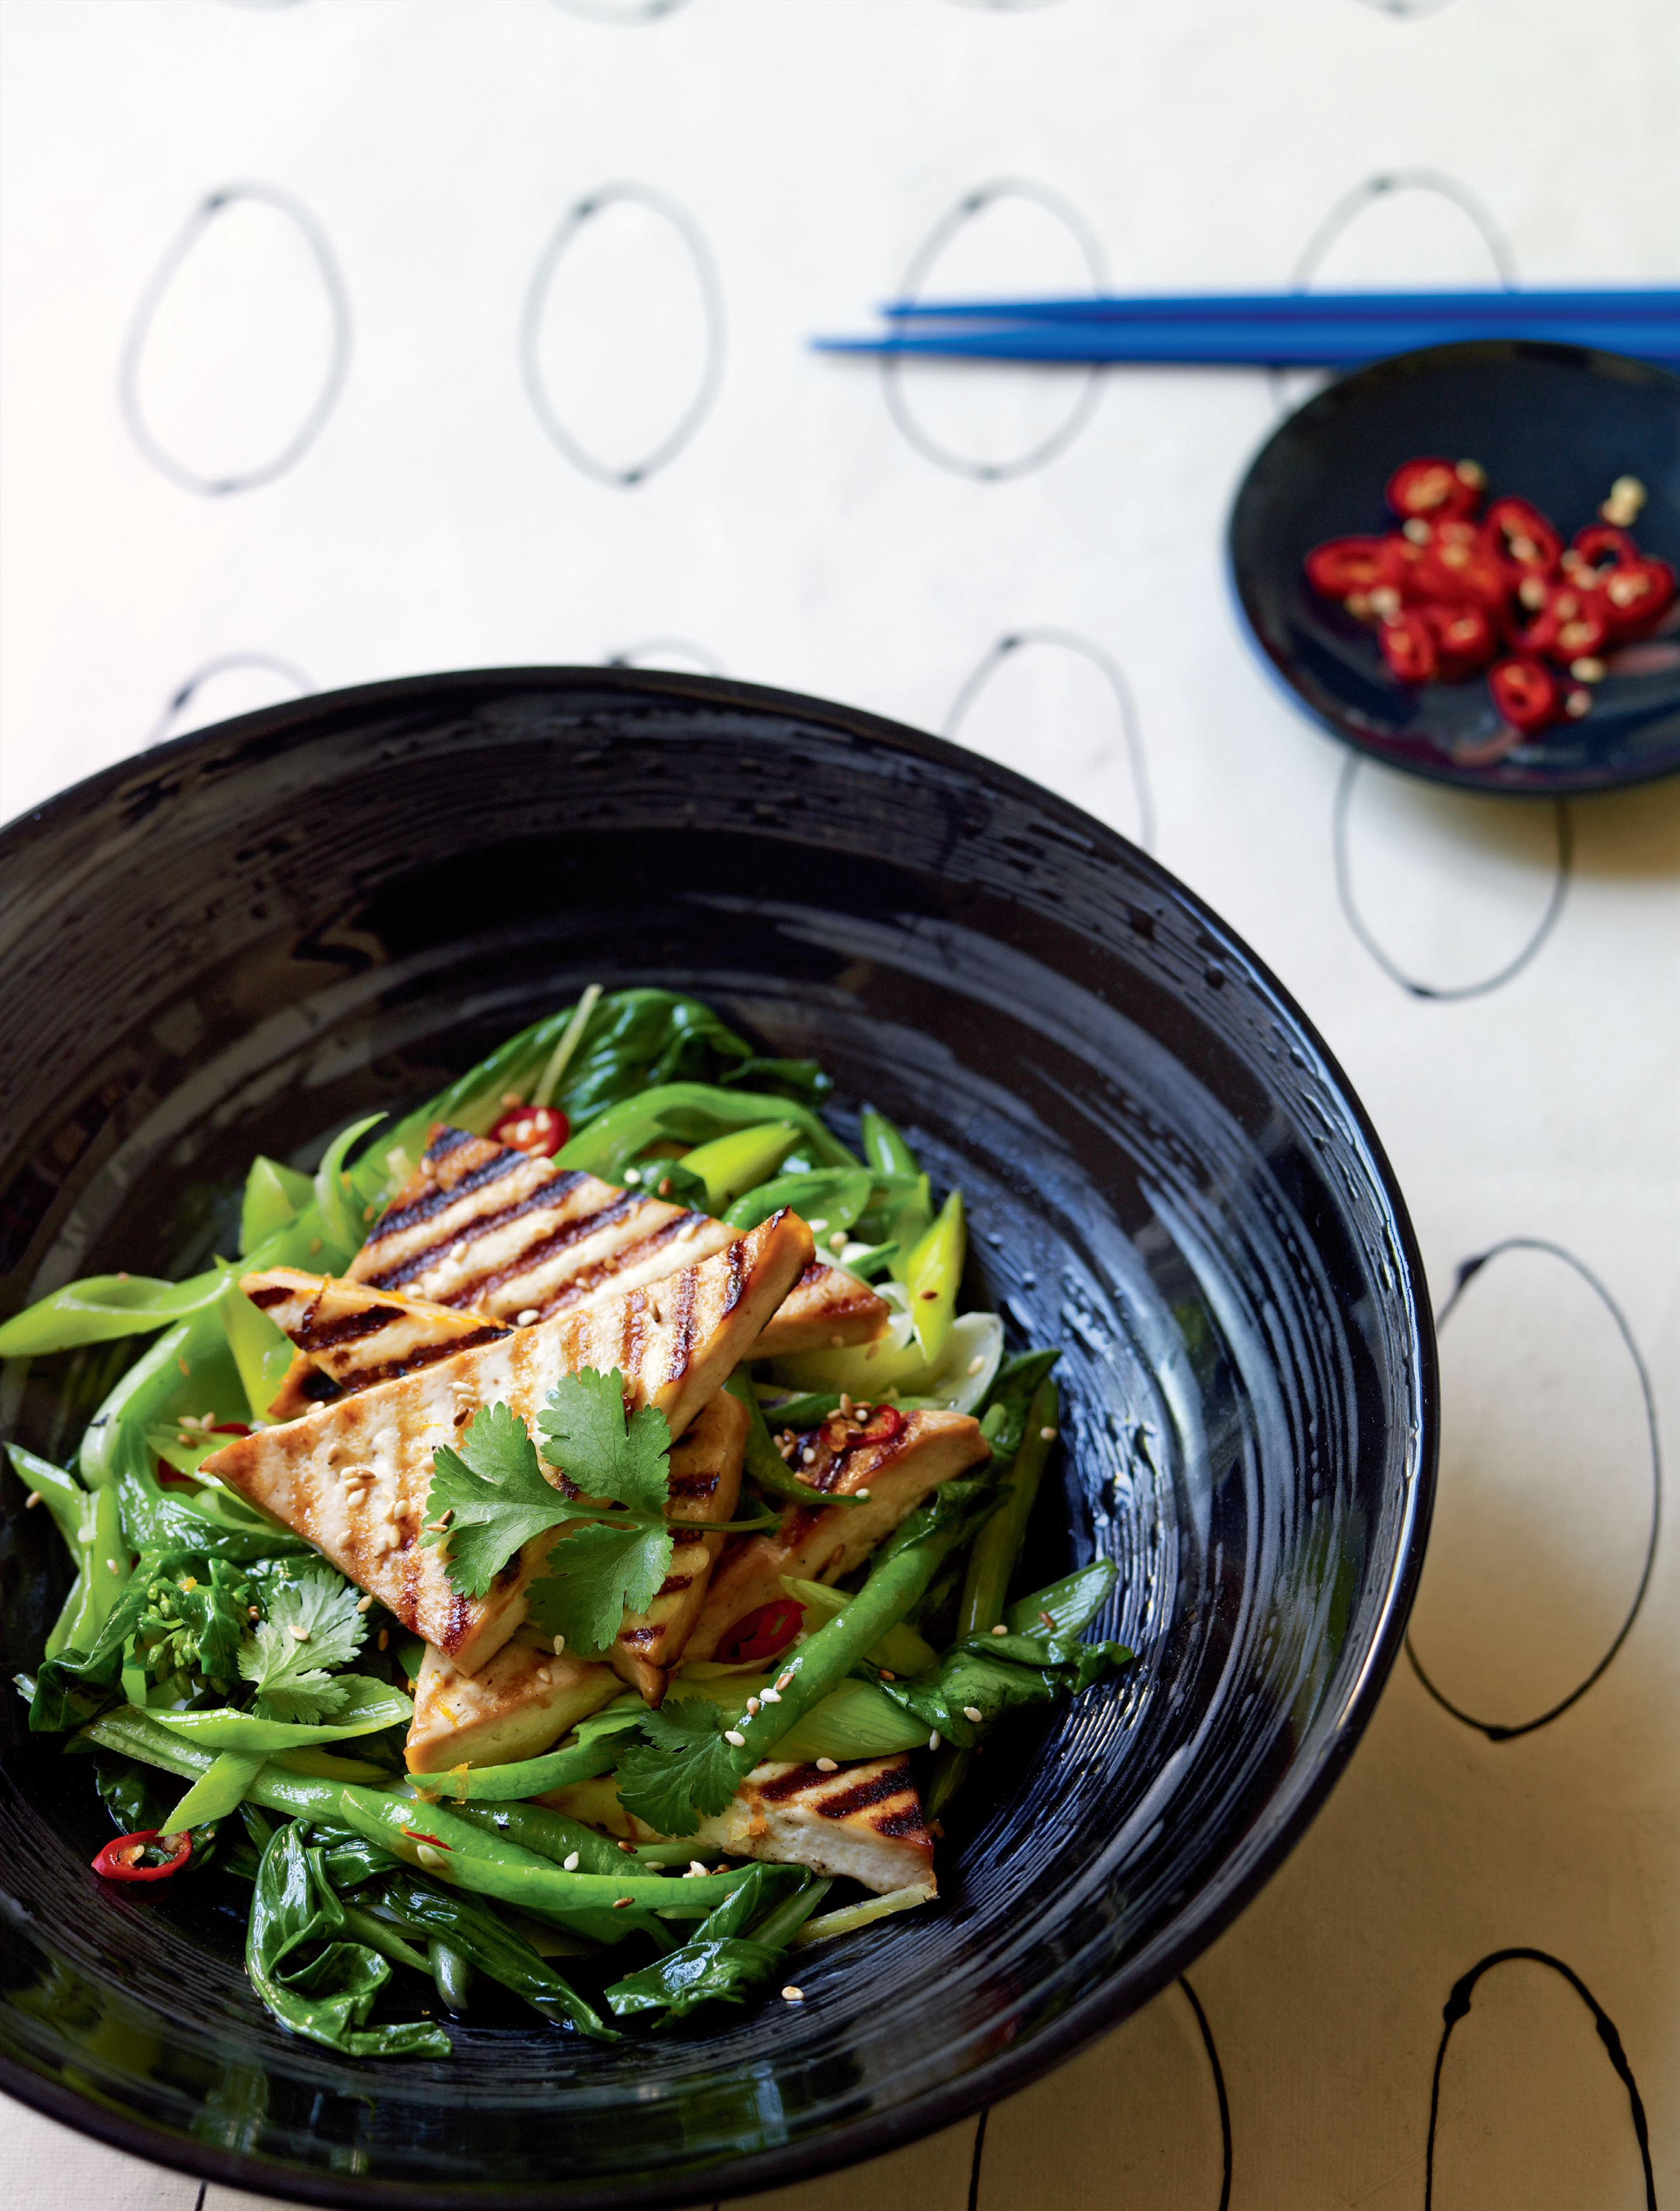 Chilli and orange grilled tofu with Asian greens